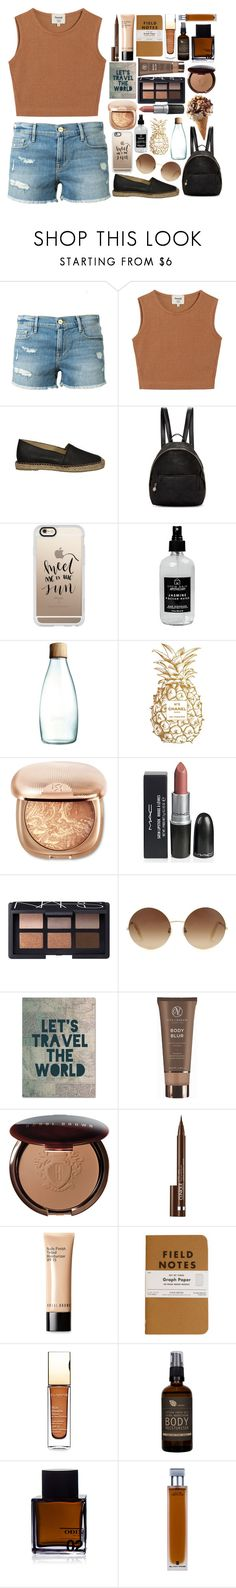 """""""Summe Outfit"""" by marias1808 ❤ liked on Polyvore featuring Frame Denim, Samuji, STELLA McCARTNEY, Casetify, Little Barn Apothecary, Retap, Chanel, NARS Cosmetics, Victoria Beckham and Trademark Fine Art"""